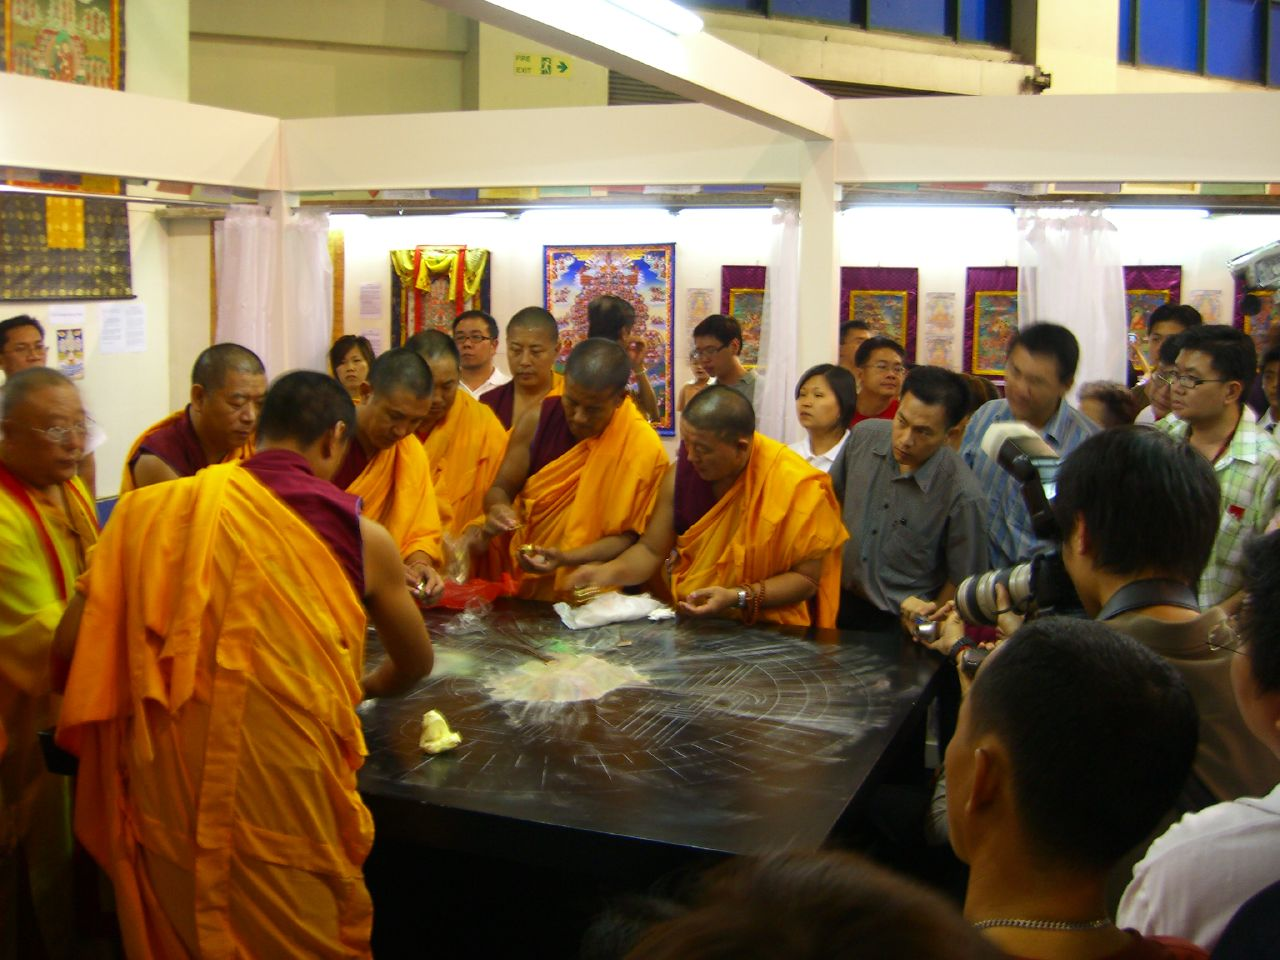 10th June - monks filling plastic bags with sands to be distributed